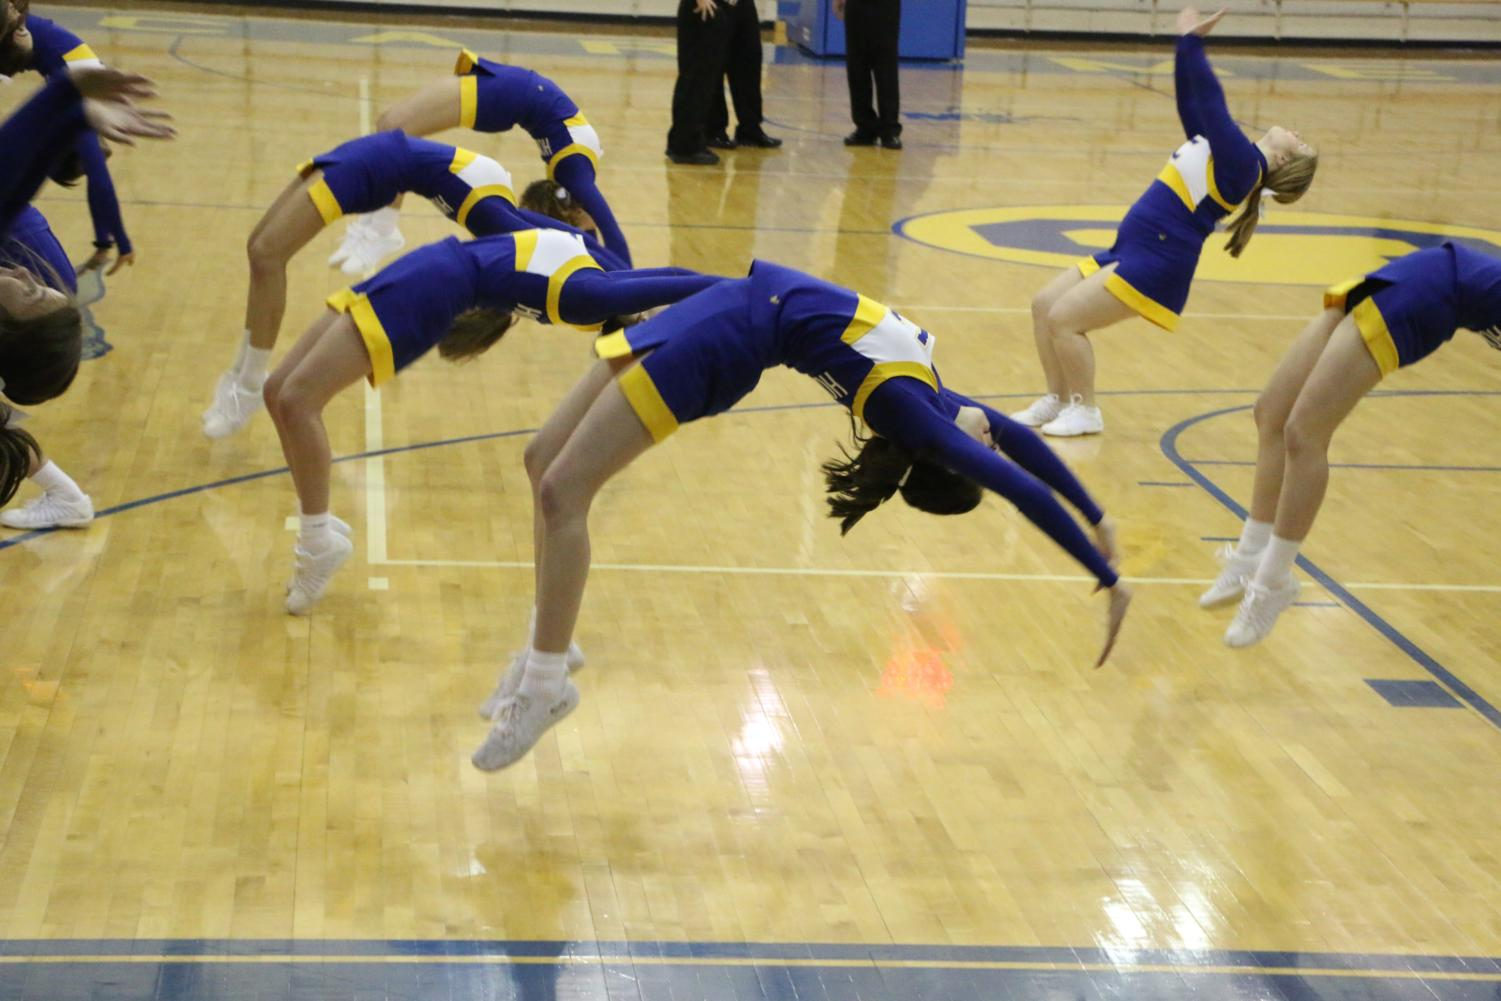 Winter Cheerleading team does a back handspring during their time out cheer. They were cheering at a Women's basketball game on Nov. 27.